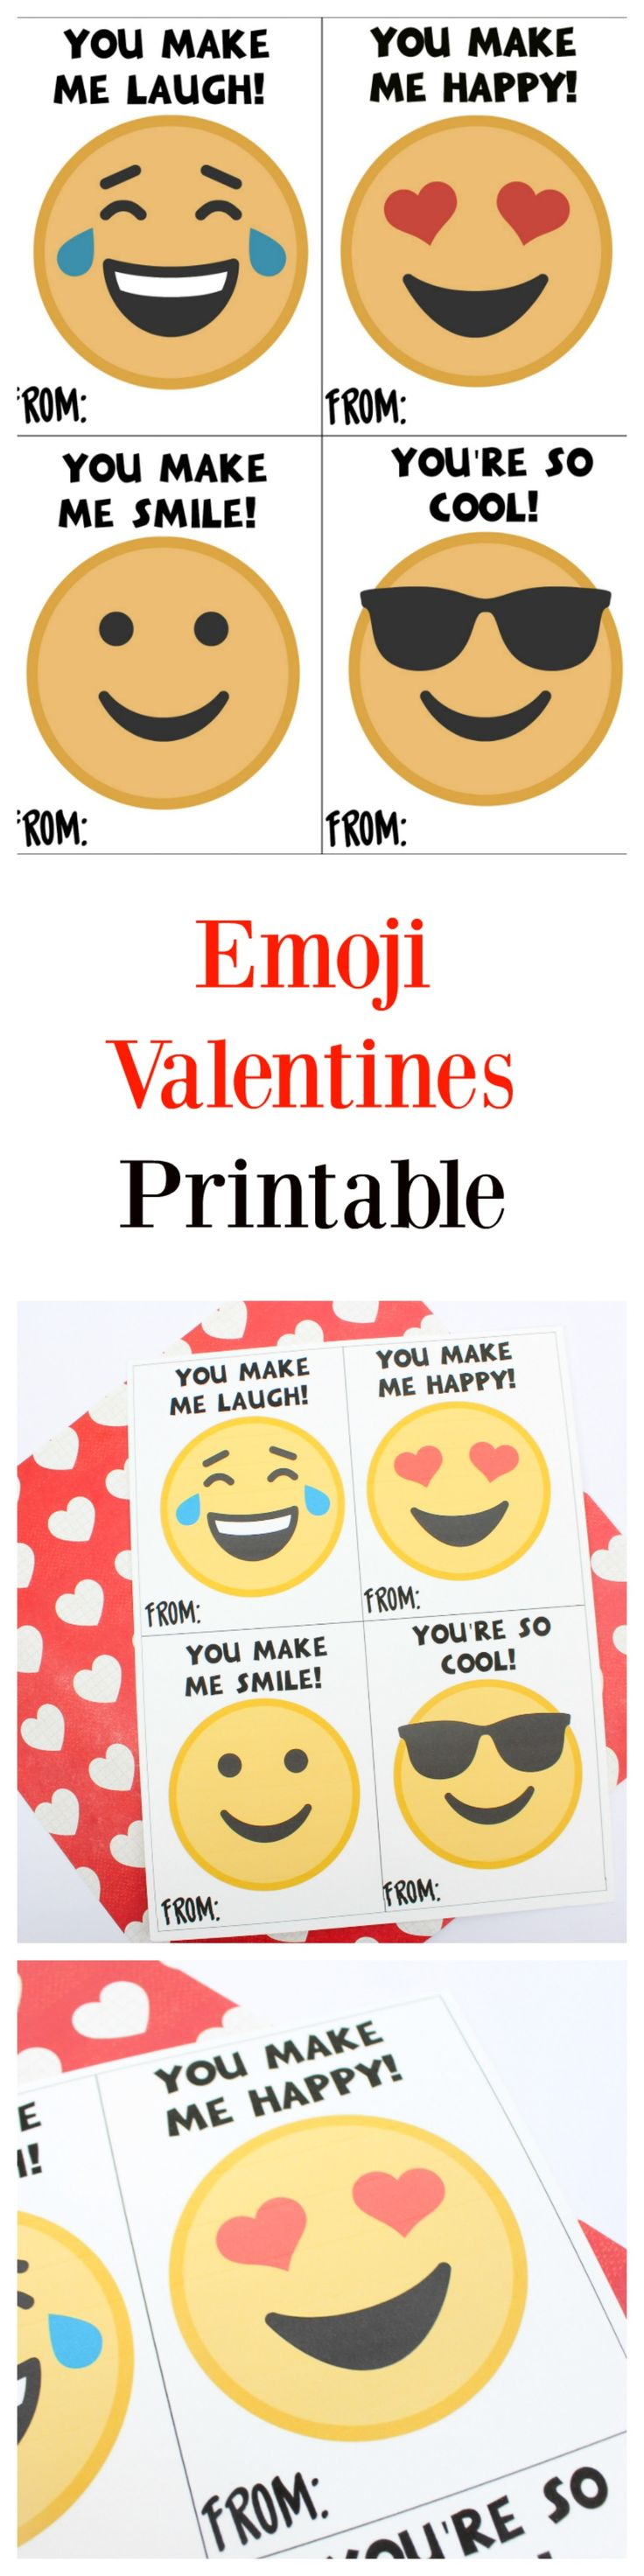 Printable Emoji Valentine's Day Cards - #valentinesday #valentines #printable